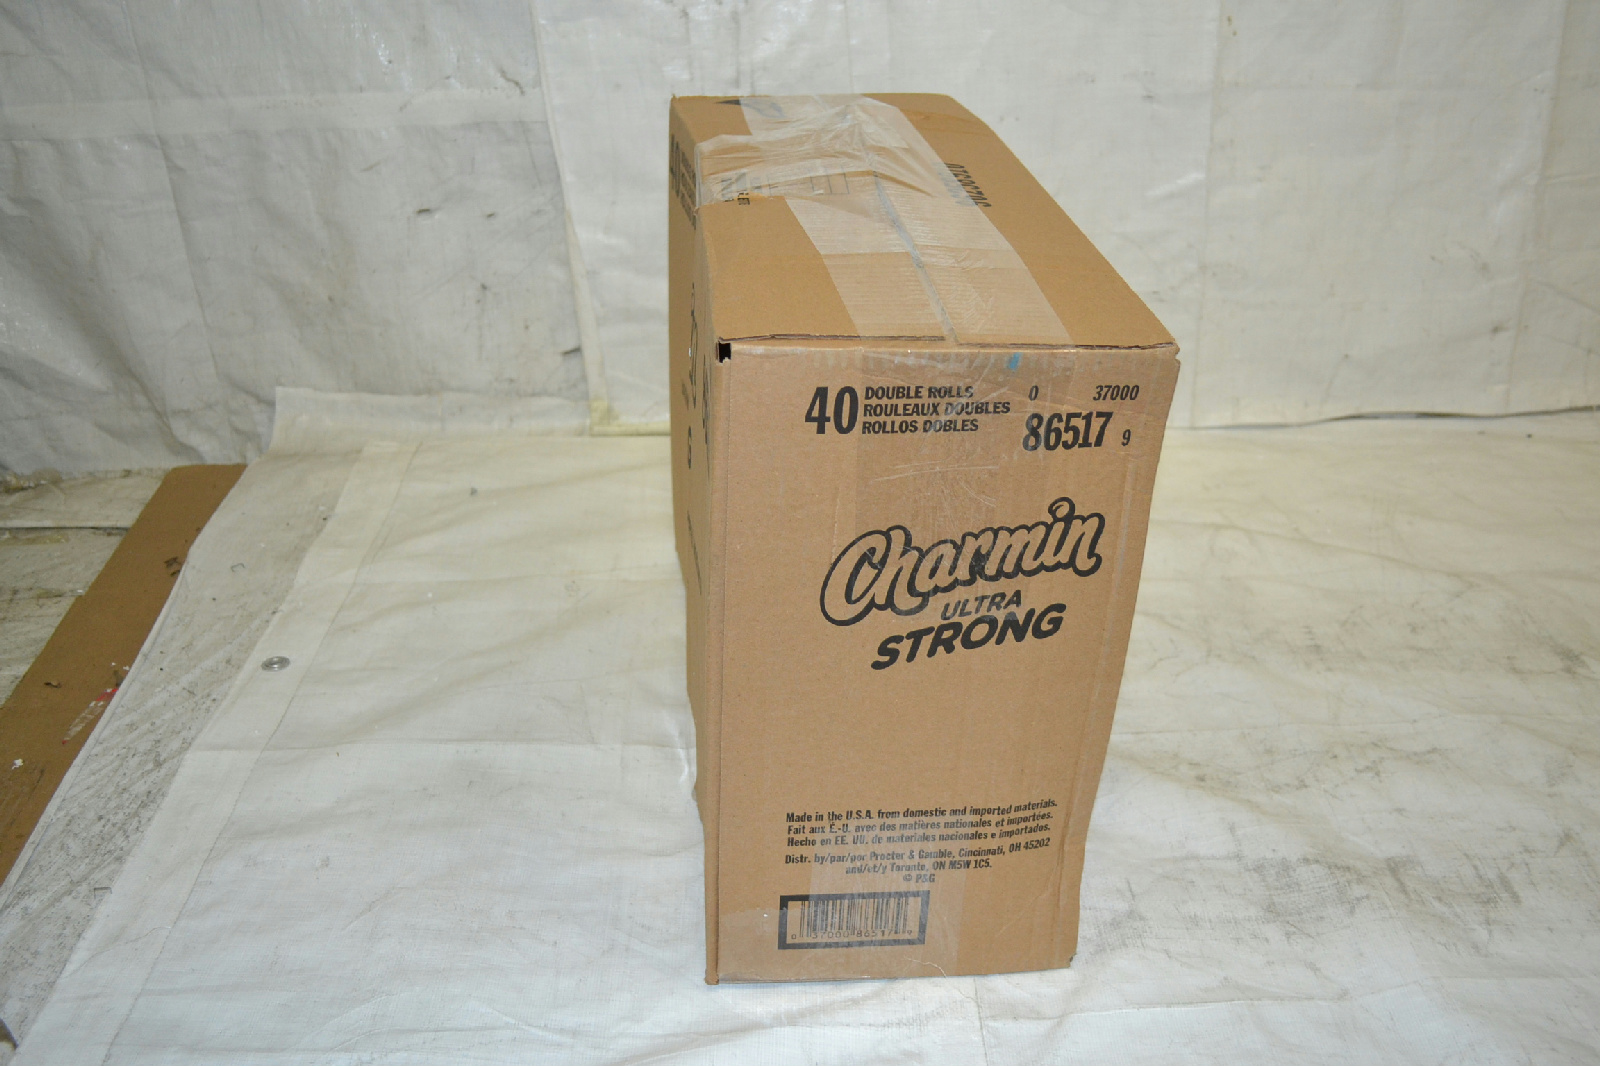 Charmin Ultra Strong Toilet Paper 40 Double Roll 10 Packs